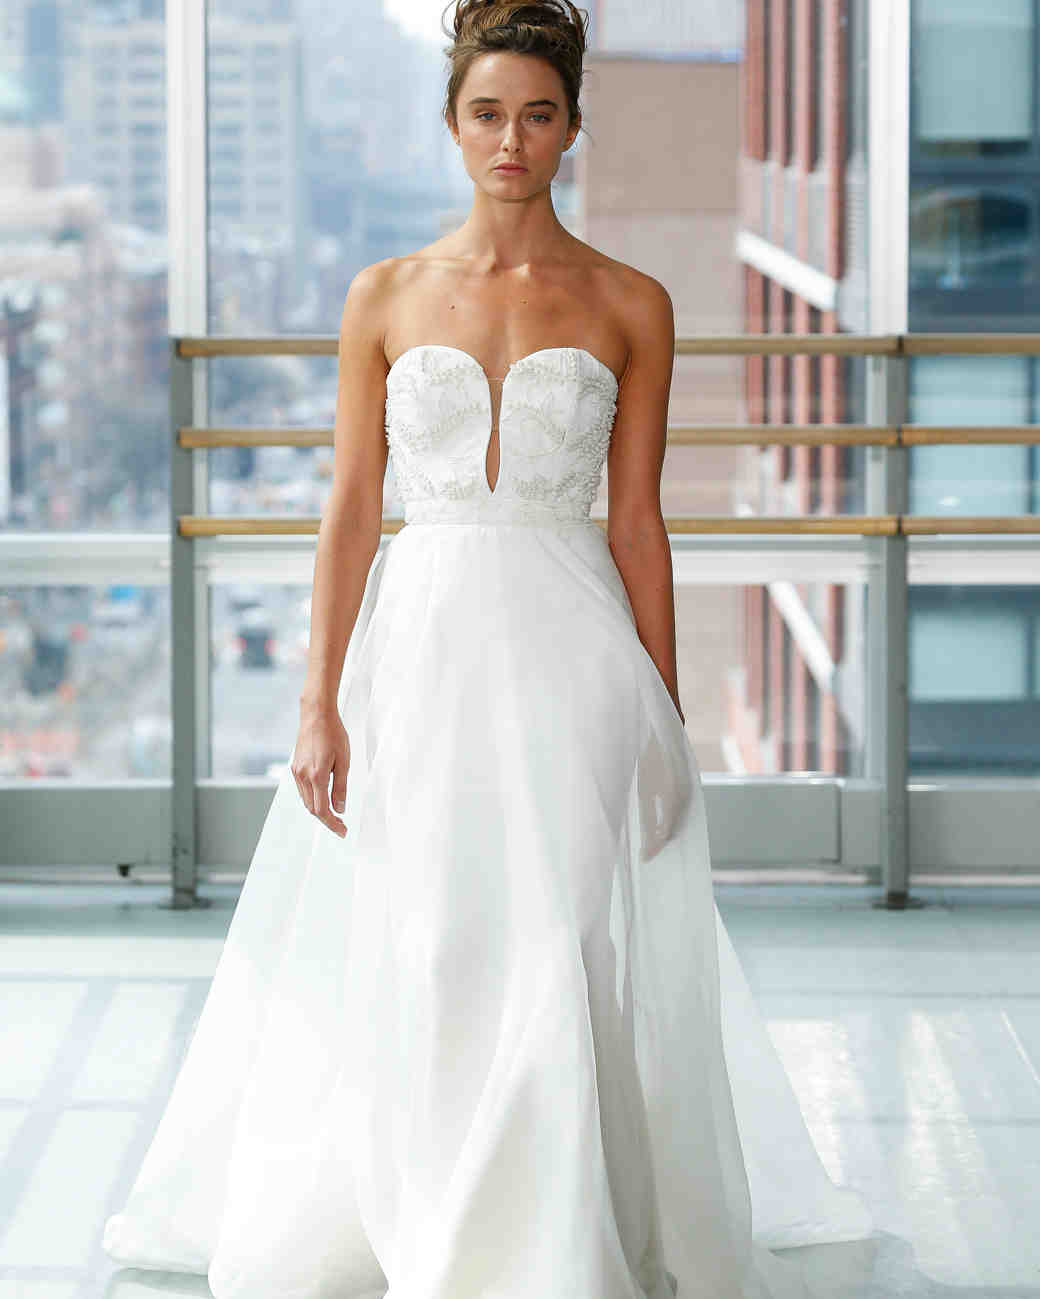 gracy accad wedding dress spring 2019 a-line cutout strapless